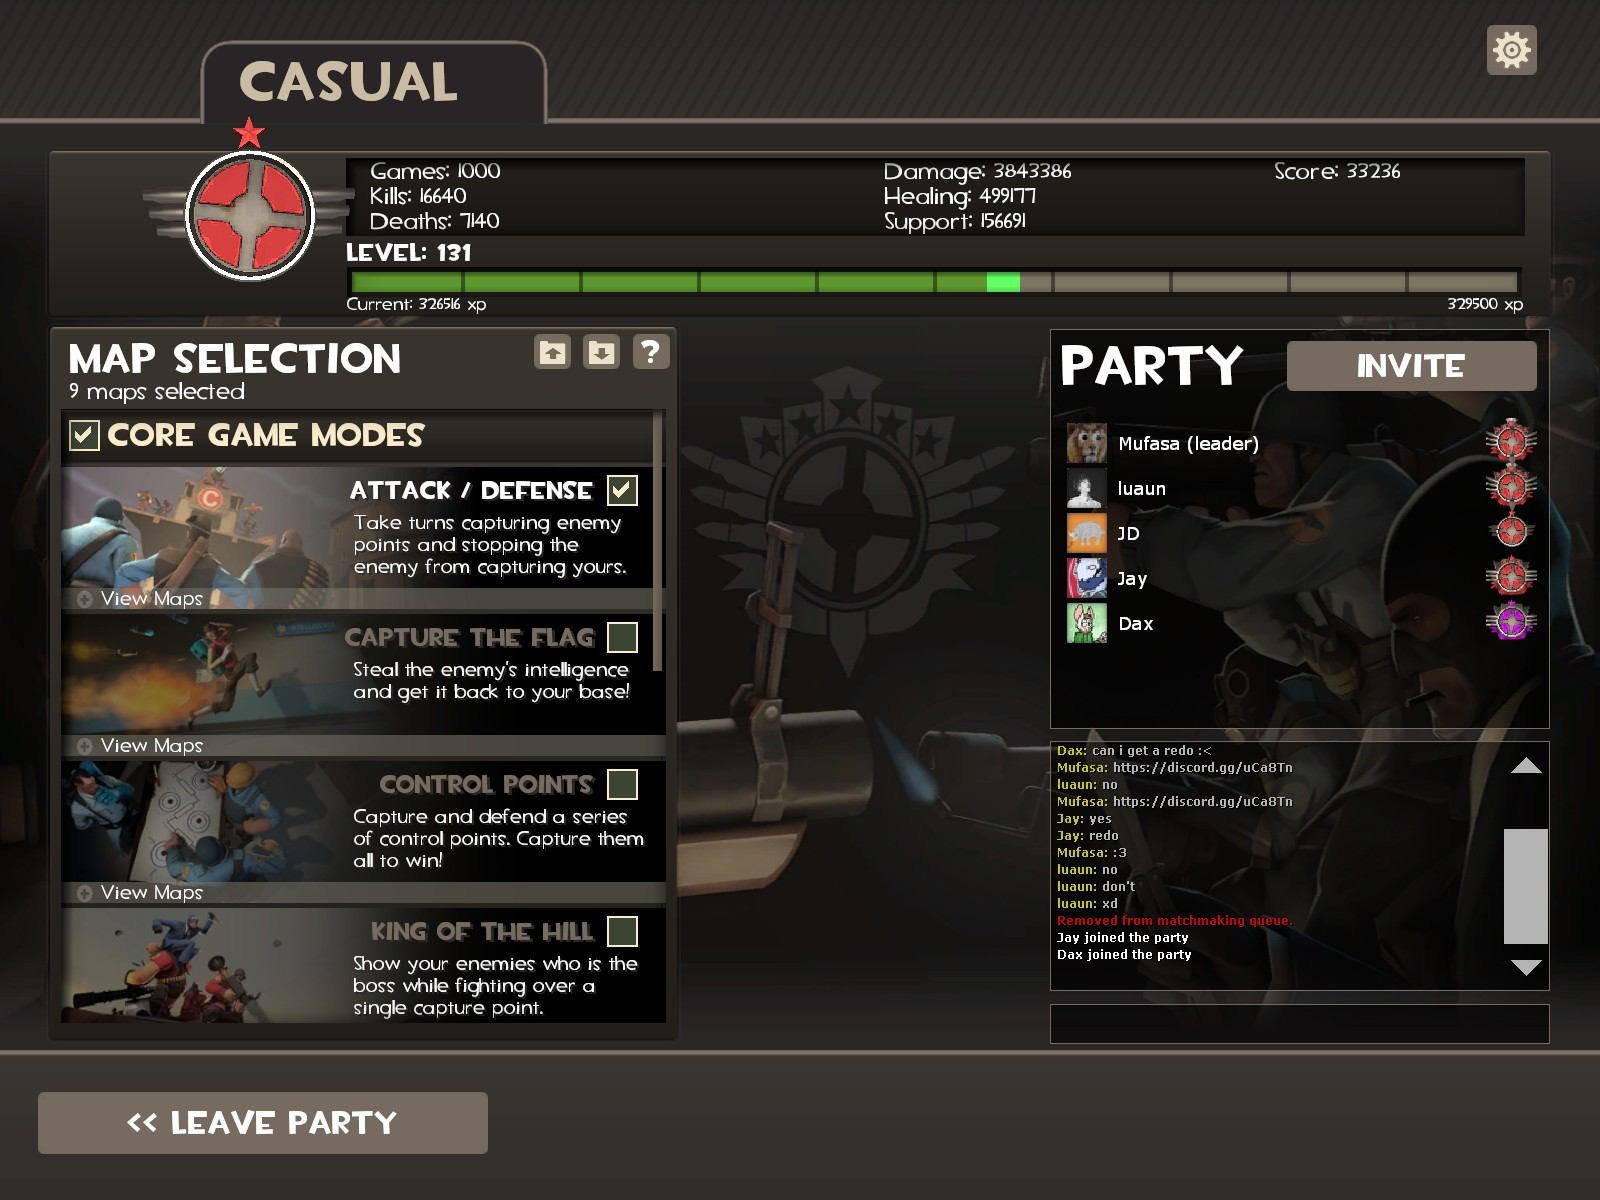 Tf2 party matchmaking